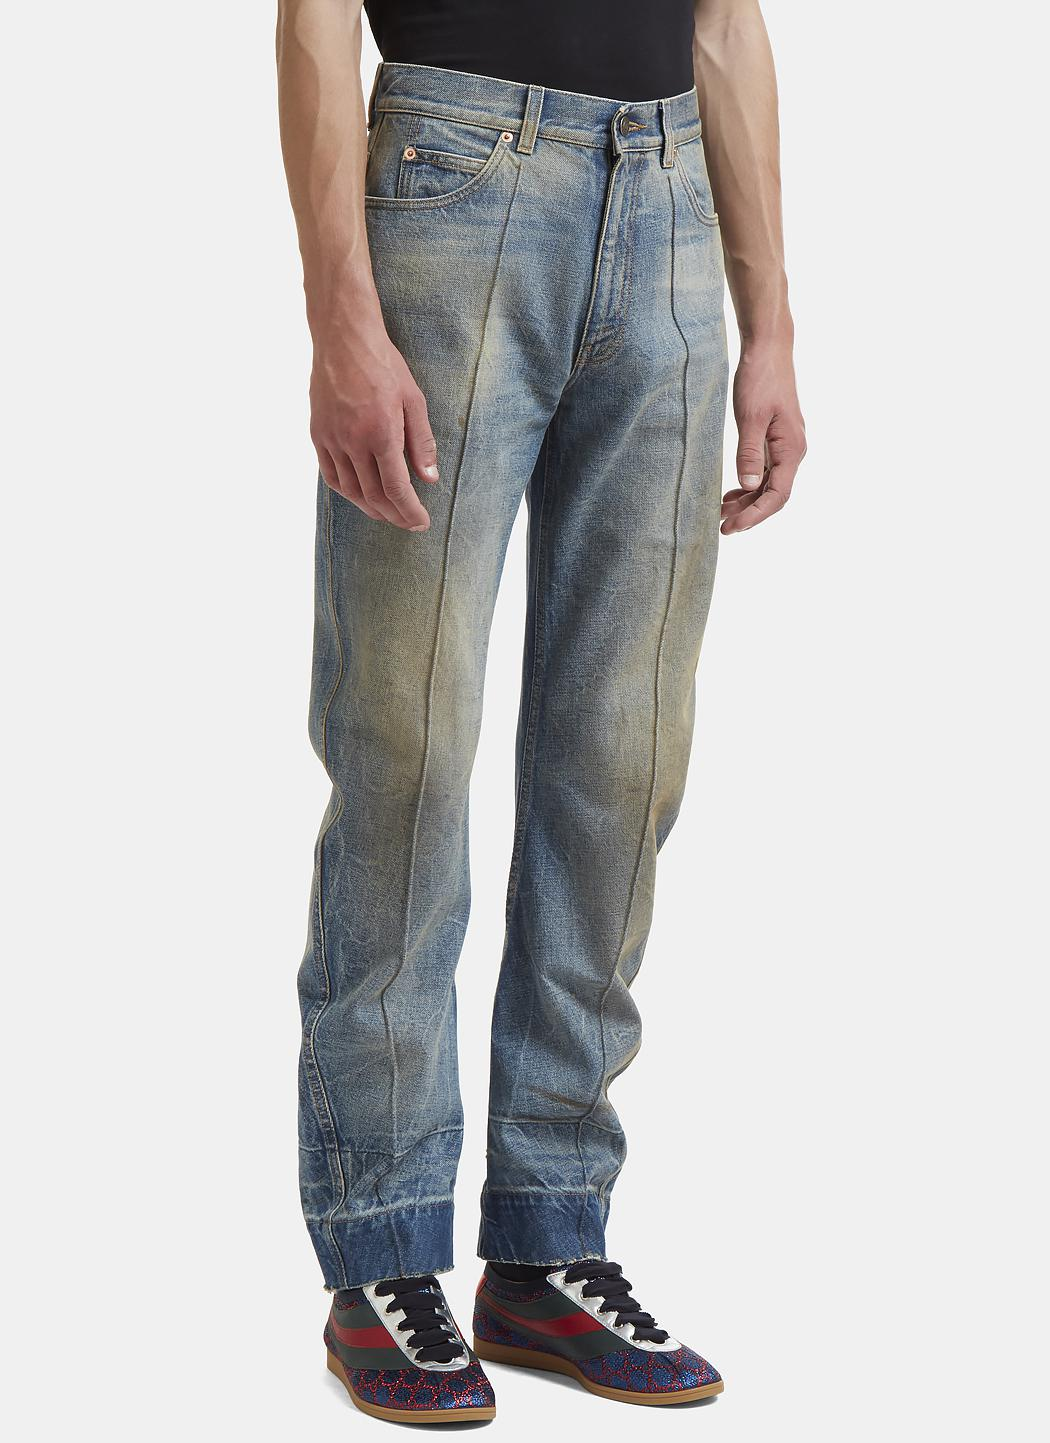 lyst gucci distressed stone washed jeans in blue in blue for men. Black Bedroom Furniture Sets. Home Design Ideas